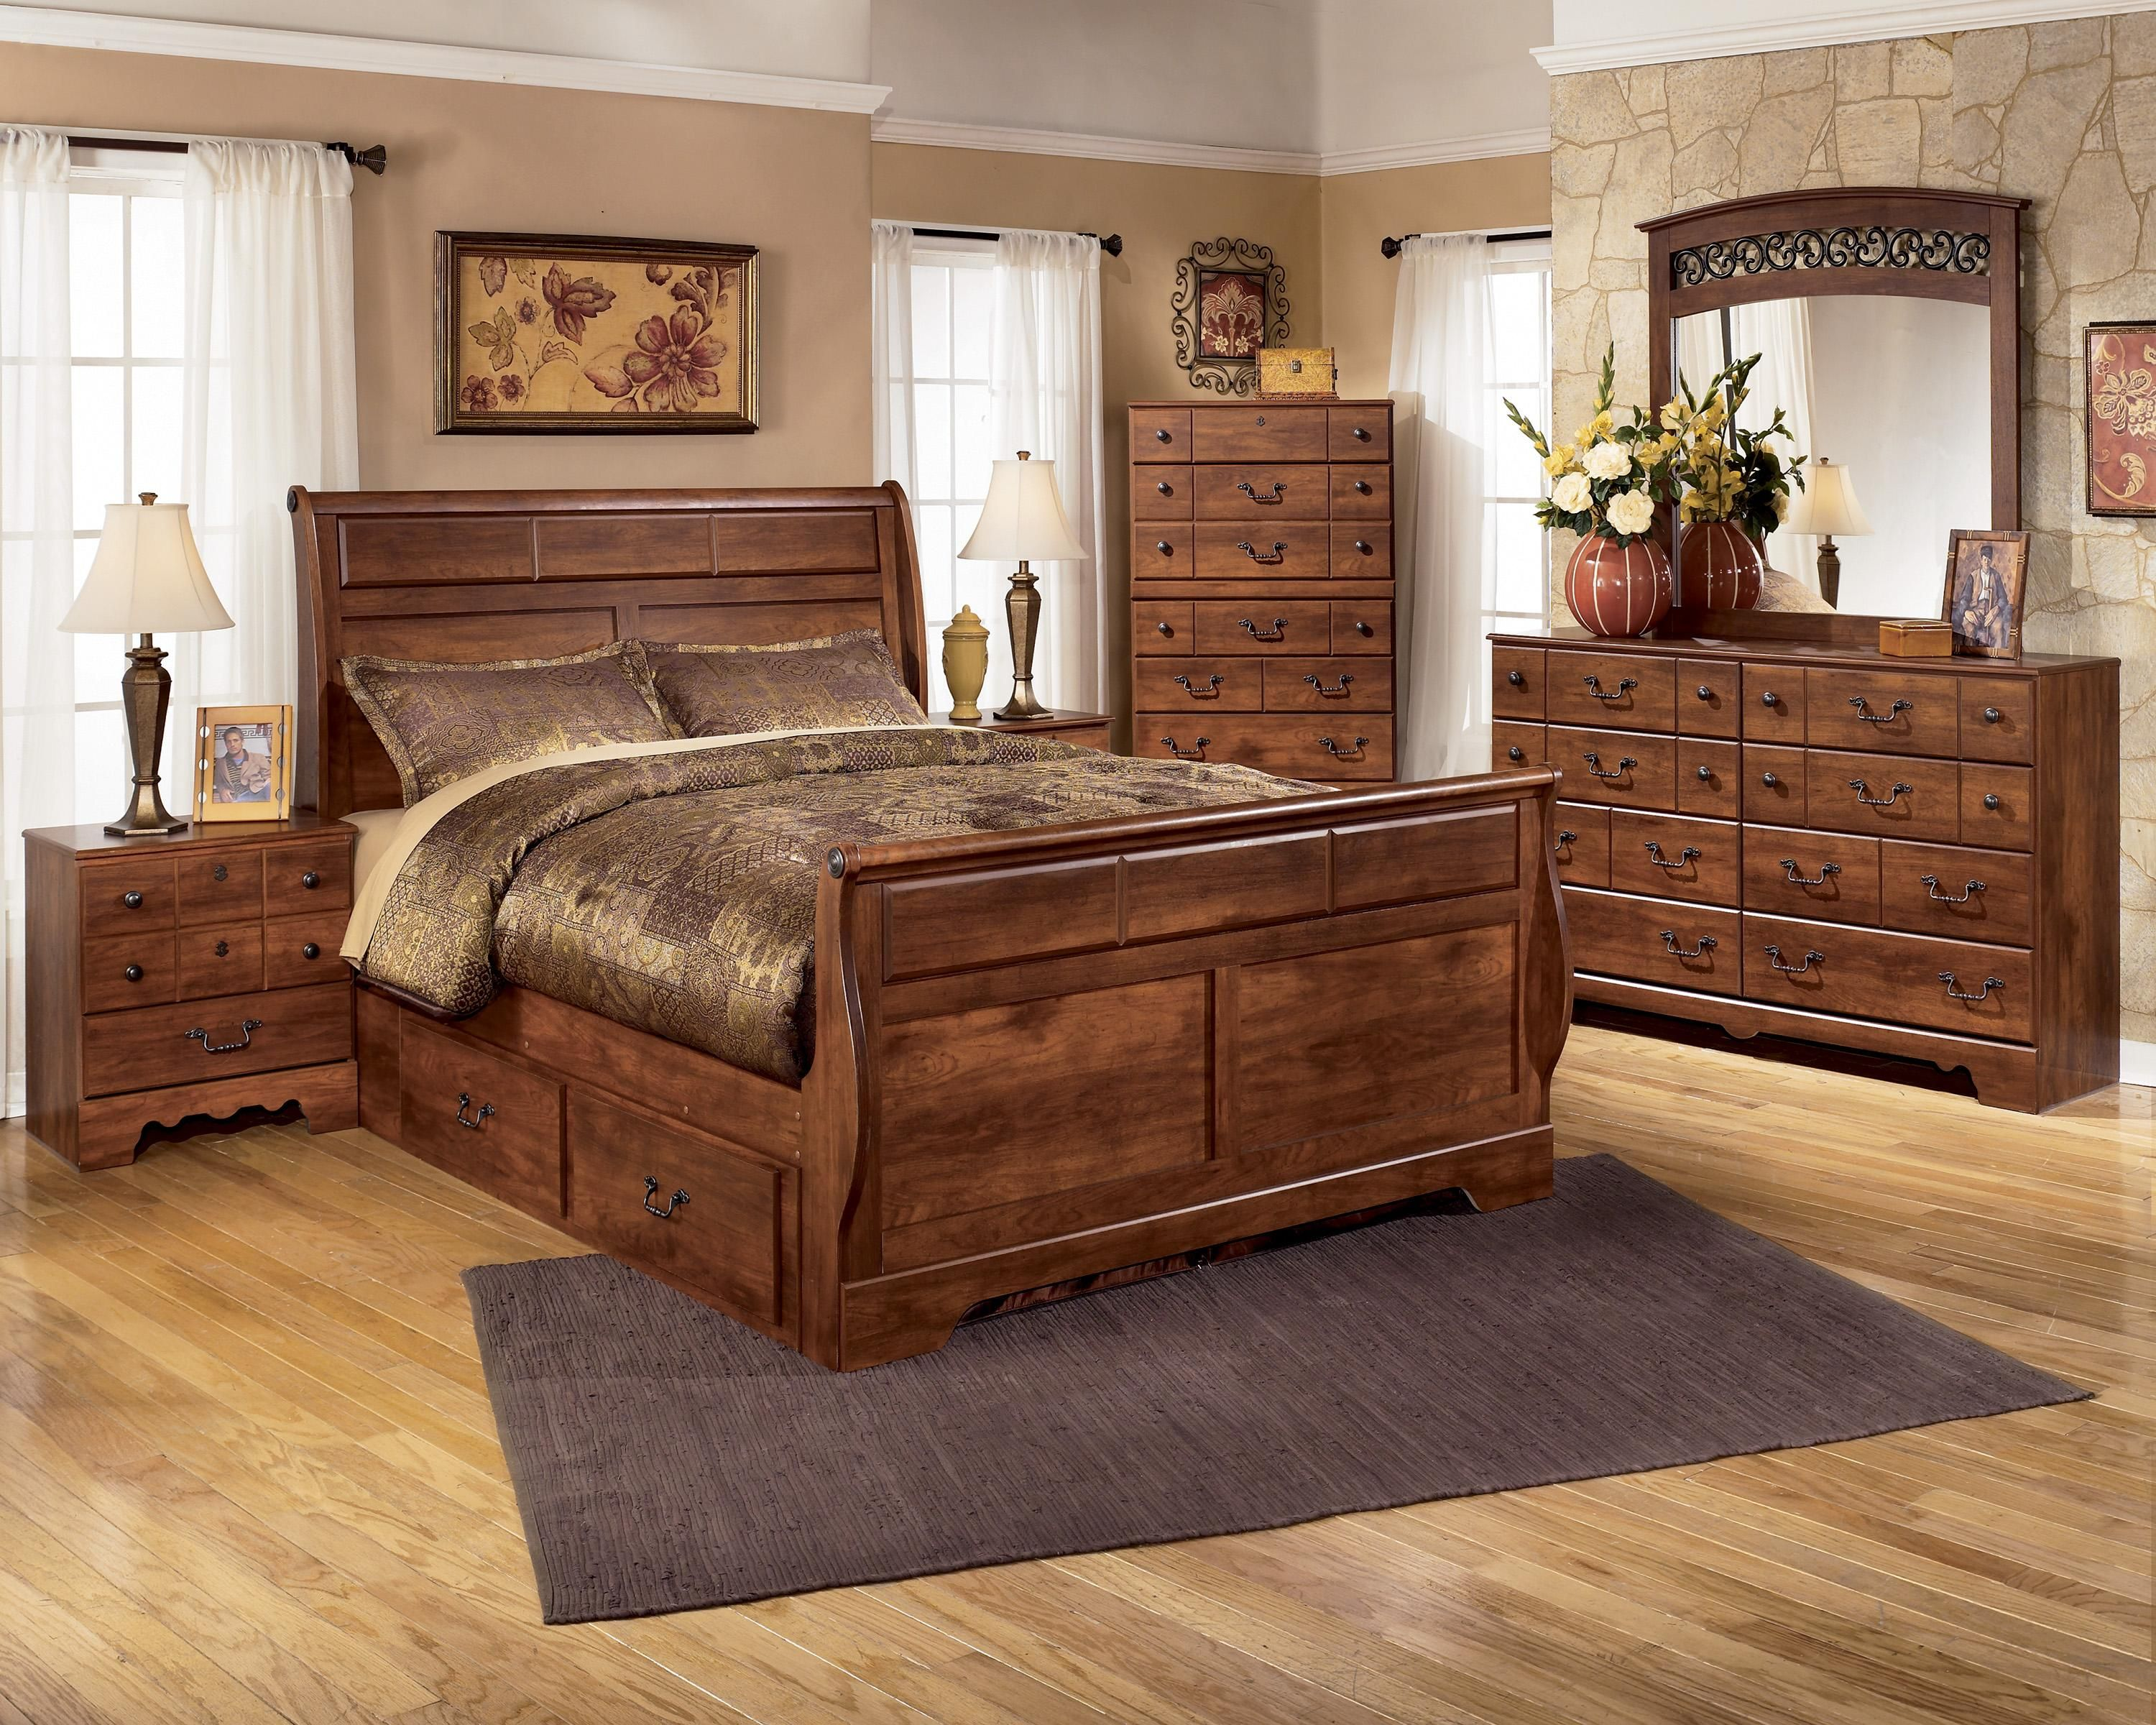 Timberline queen bedroom group by signature design by ashley queen